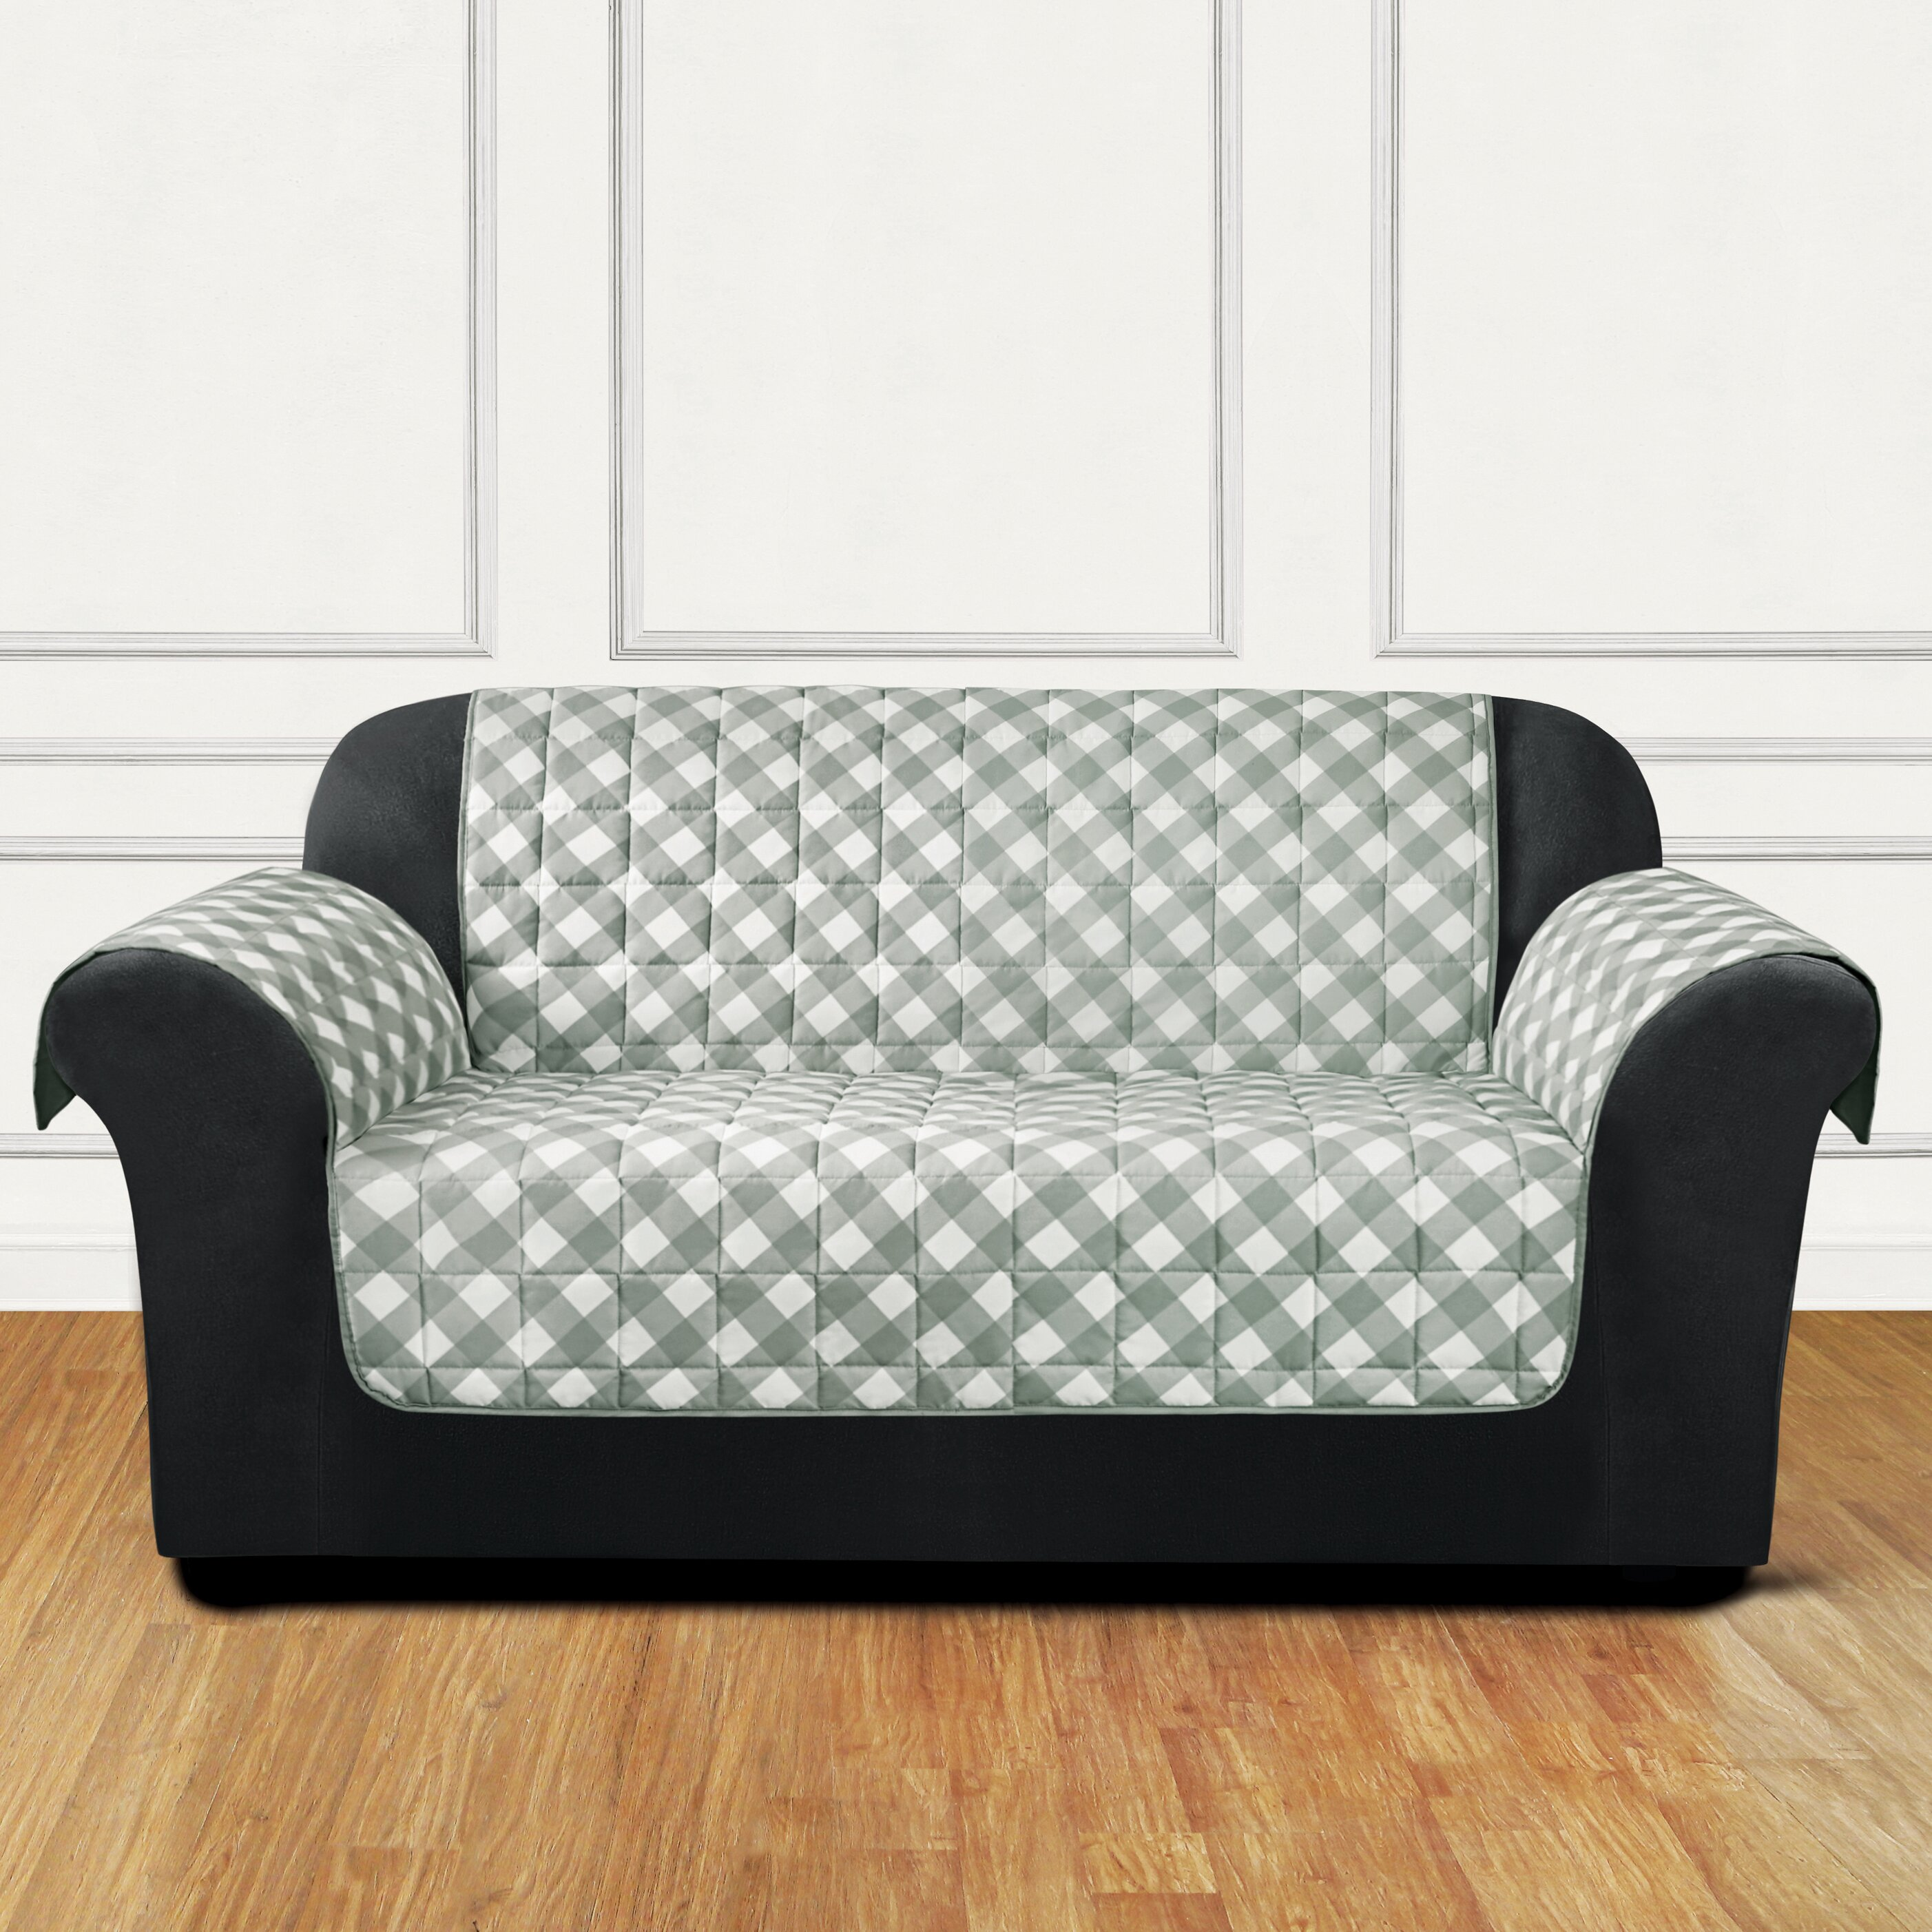 Sure fit furniture flair flash loveseat t cushion slipcover wayfair Loveseat t cushion slipcovers